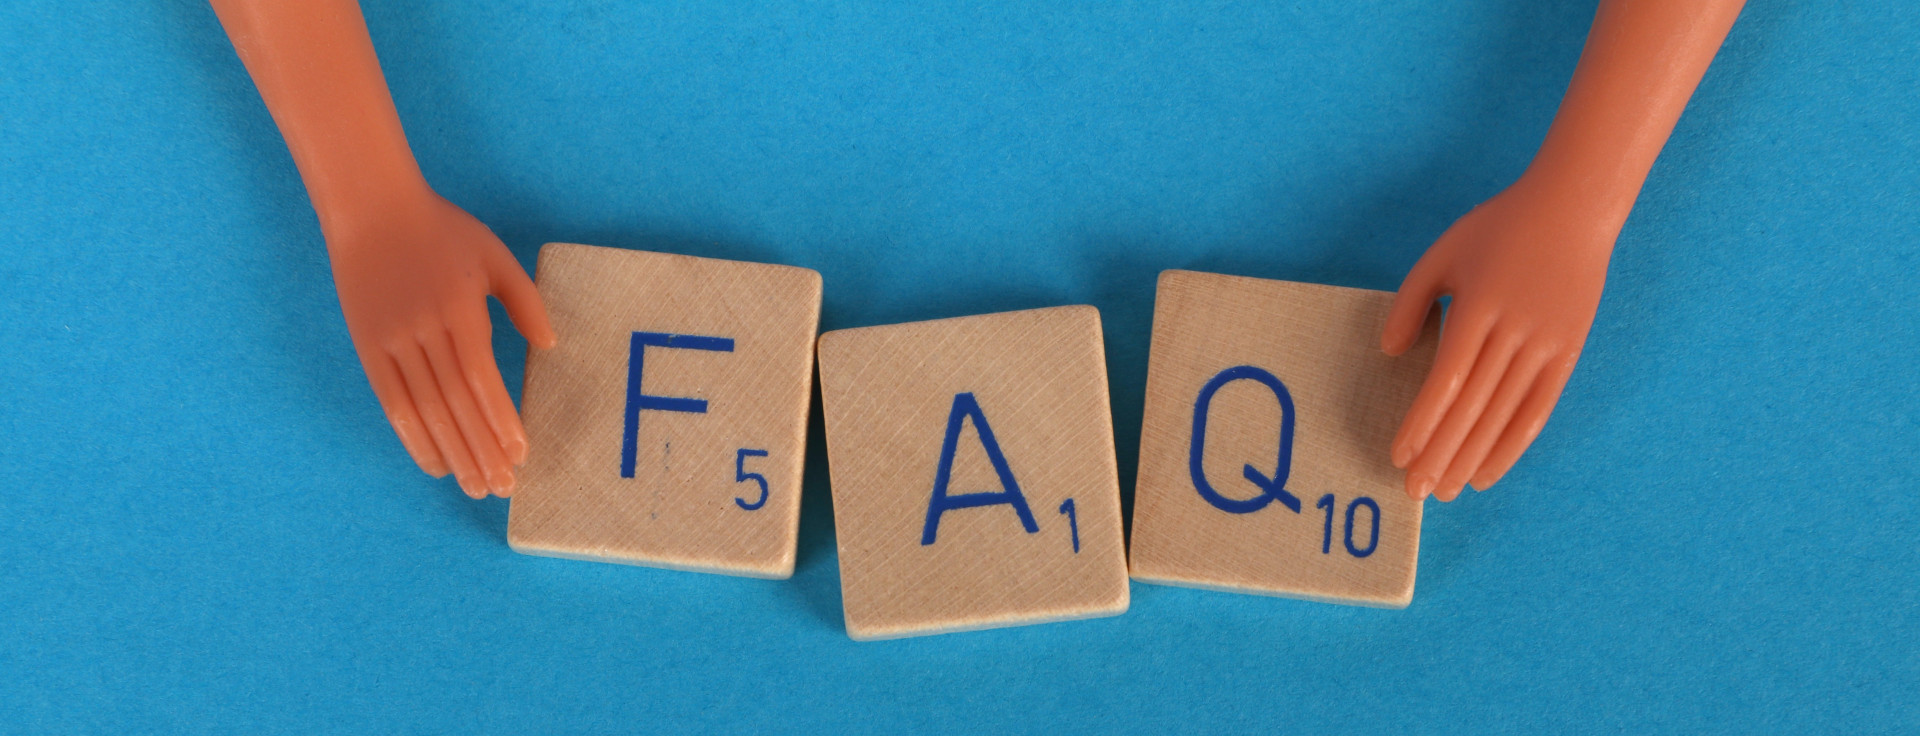 FBA Prep frequently asked questions